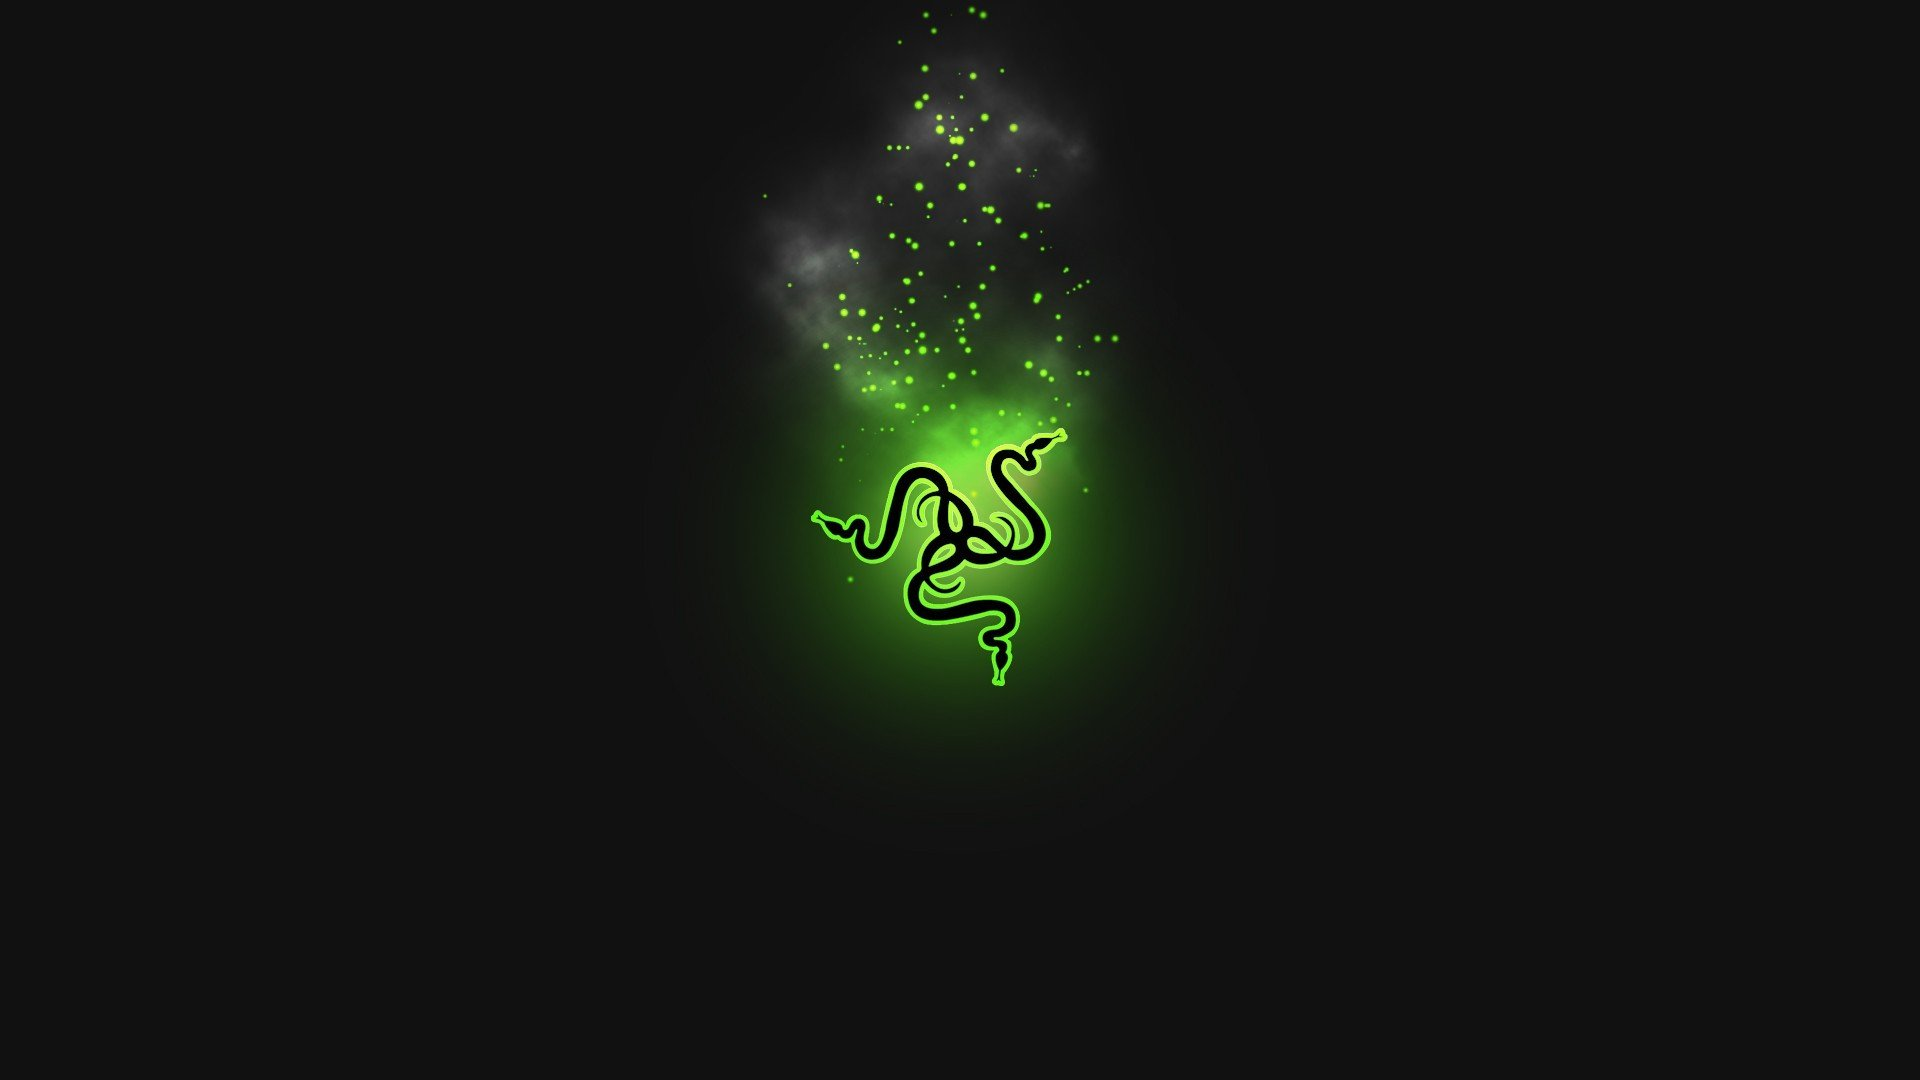 Razer HD Wallpapers Desktop And Mobile Images Photos